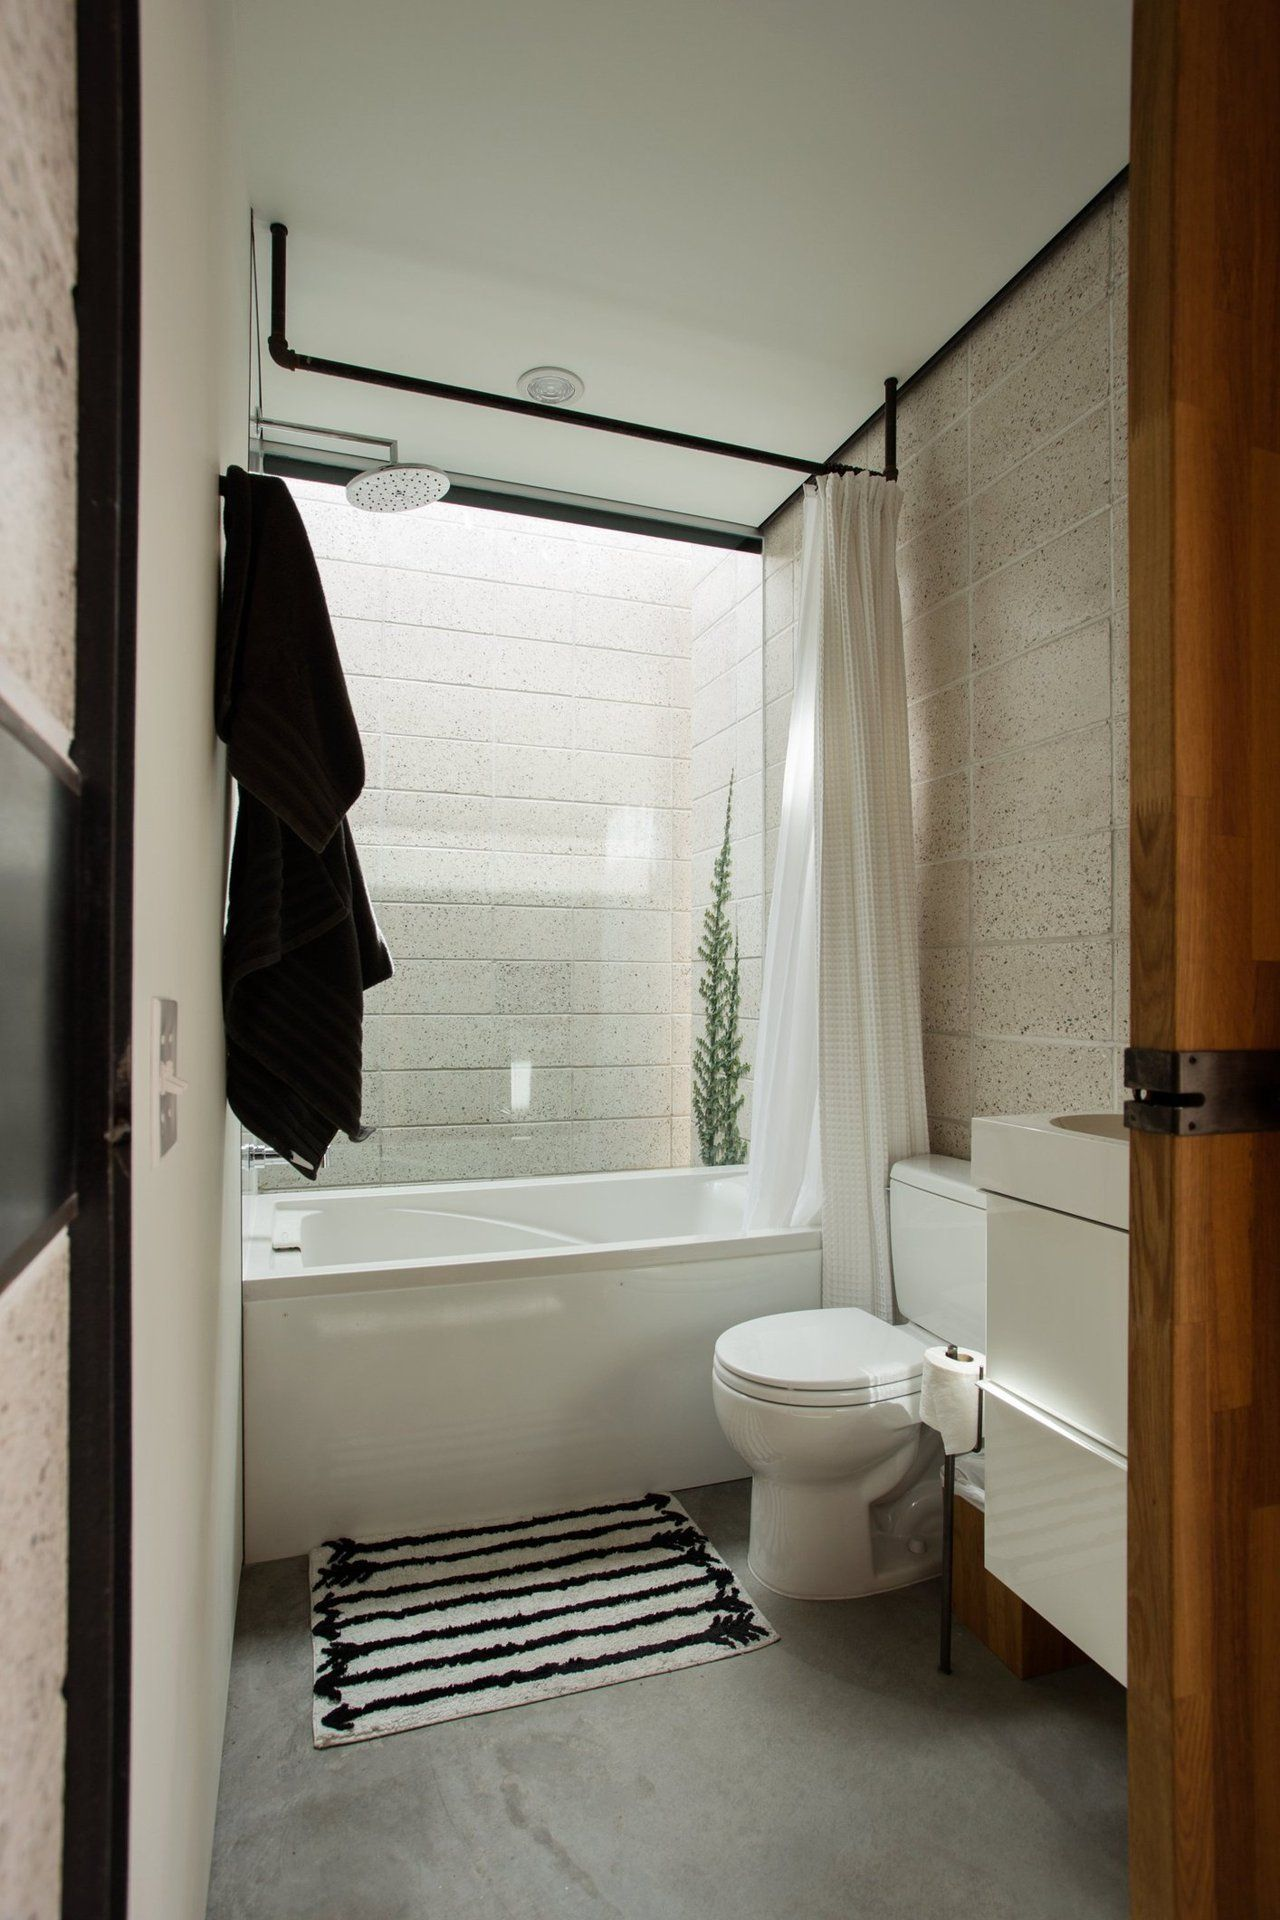 Unique Shower Curtain Rods A Small Sophisticated 468 Square Foot Urban Arizona Studio